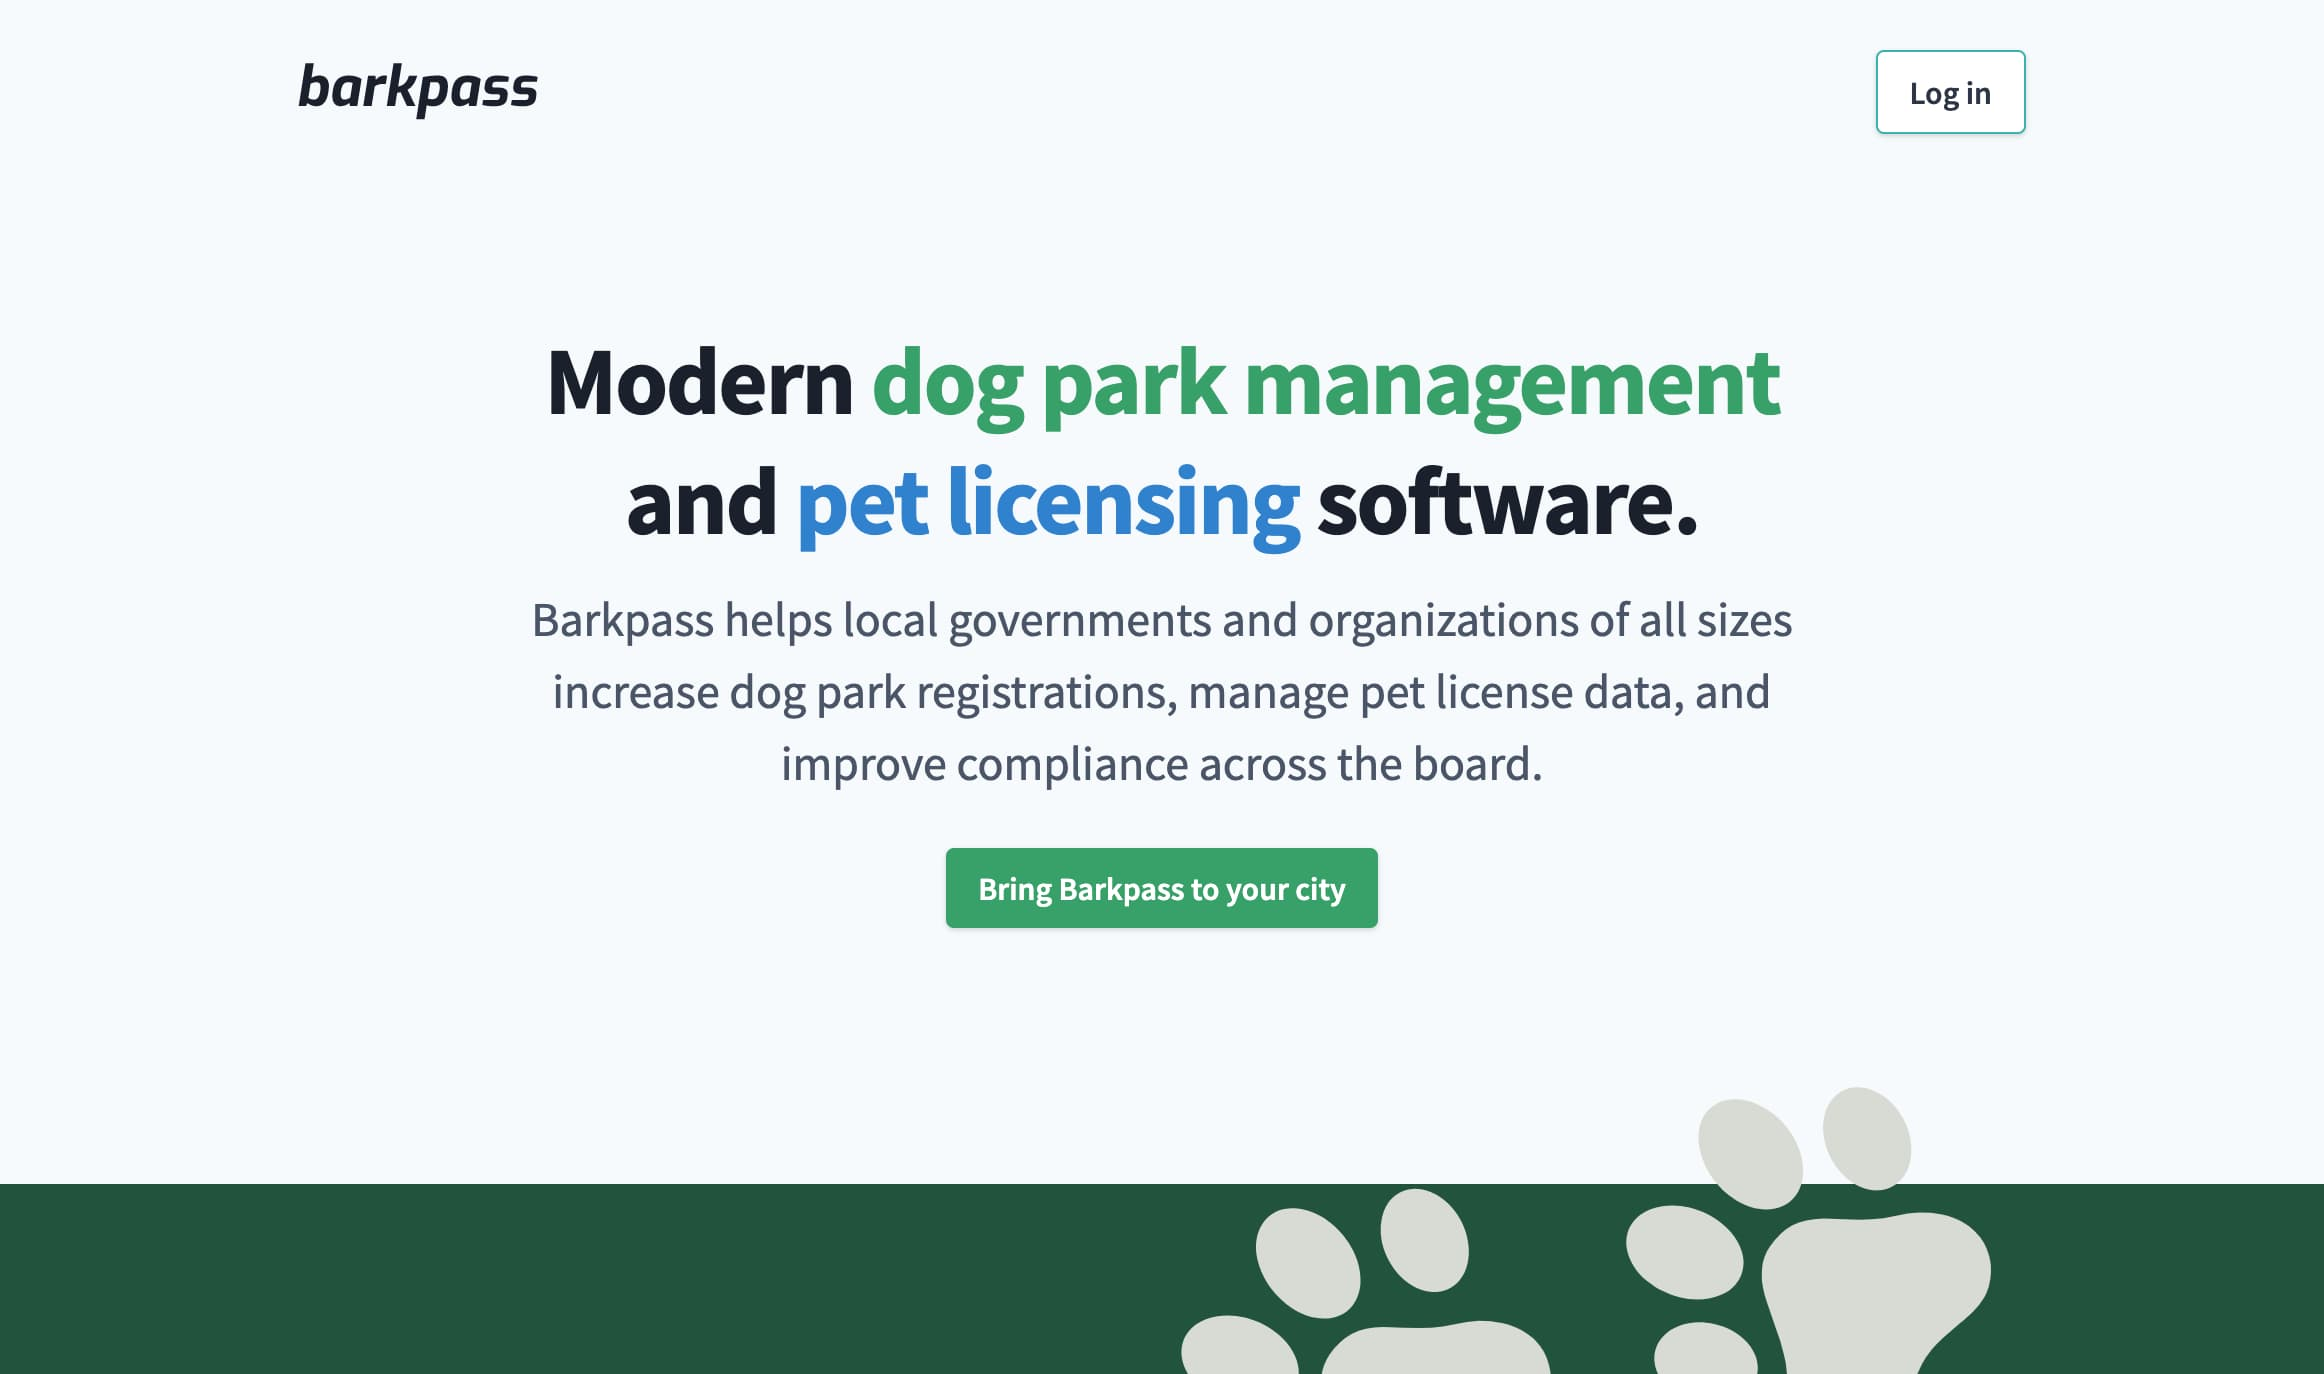 The Barkpass homepage